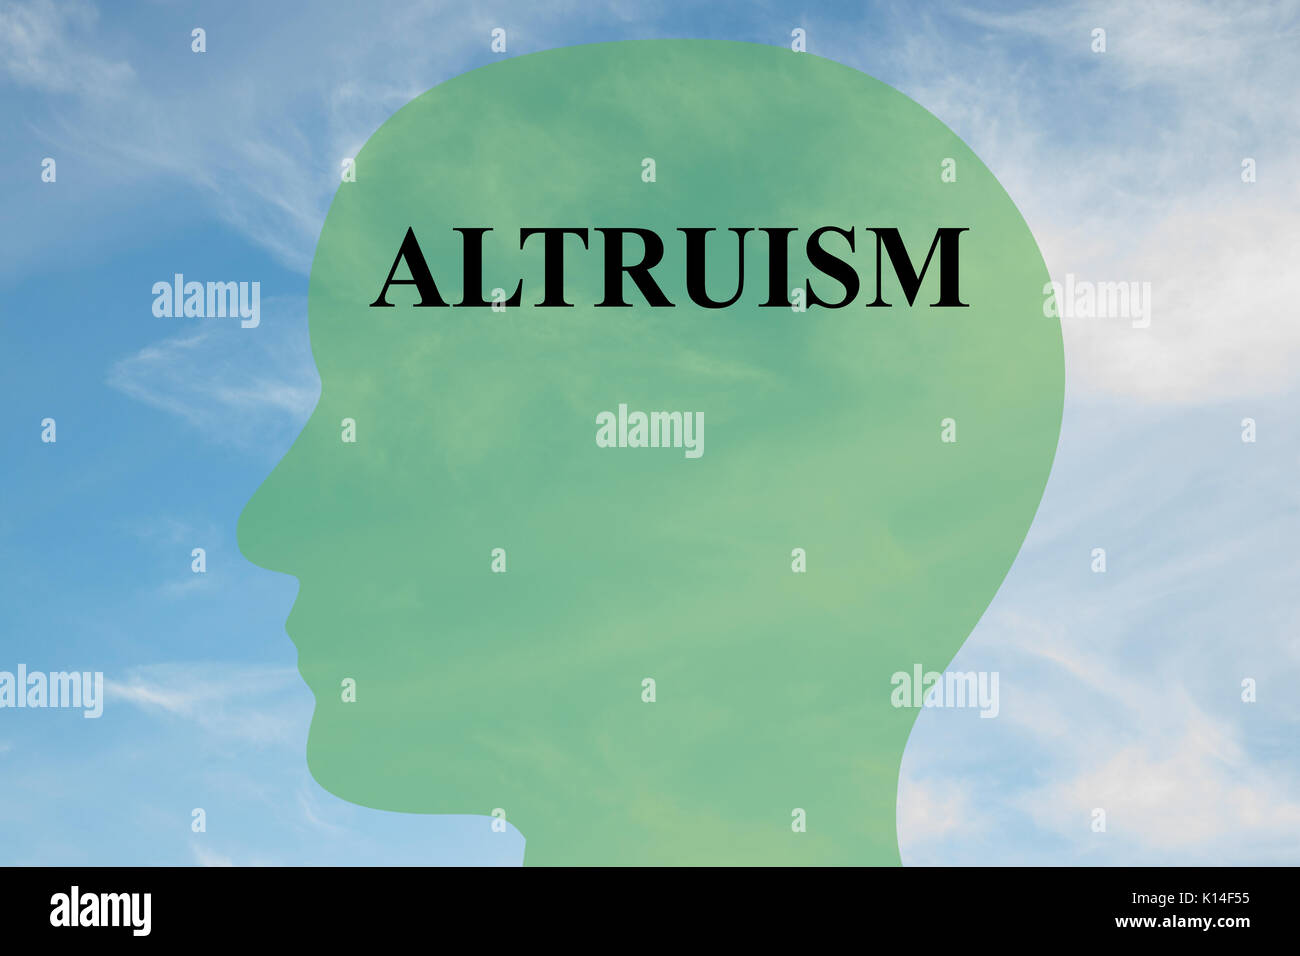 Render illustration of 'ALTRUISM' script on head silhouette, with cloudy sky as a background. - Stock Image